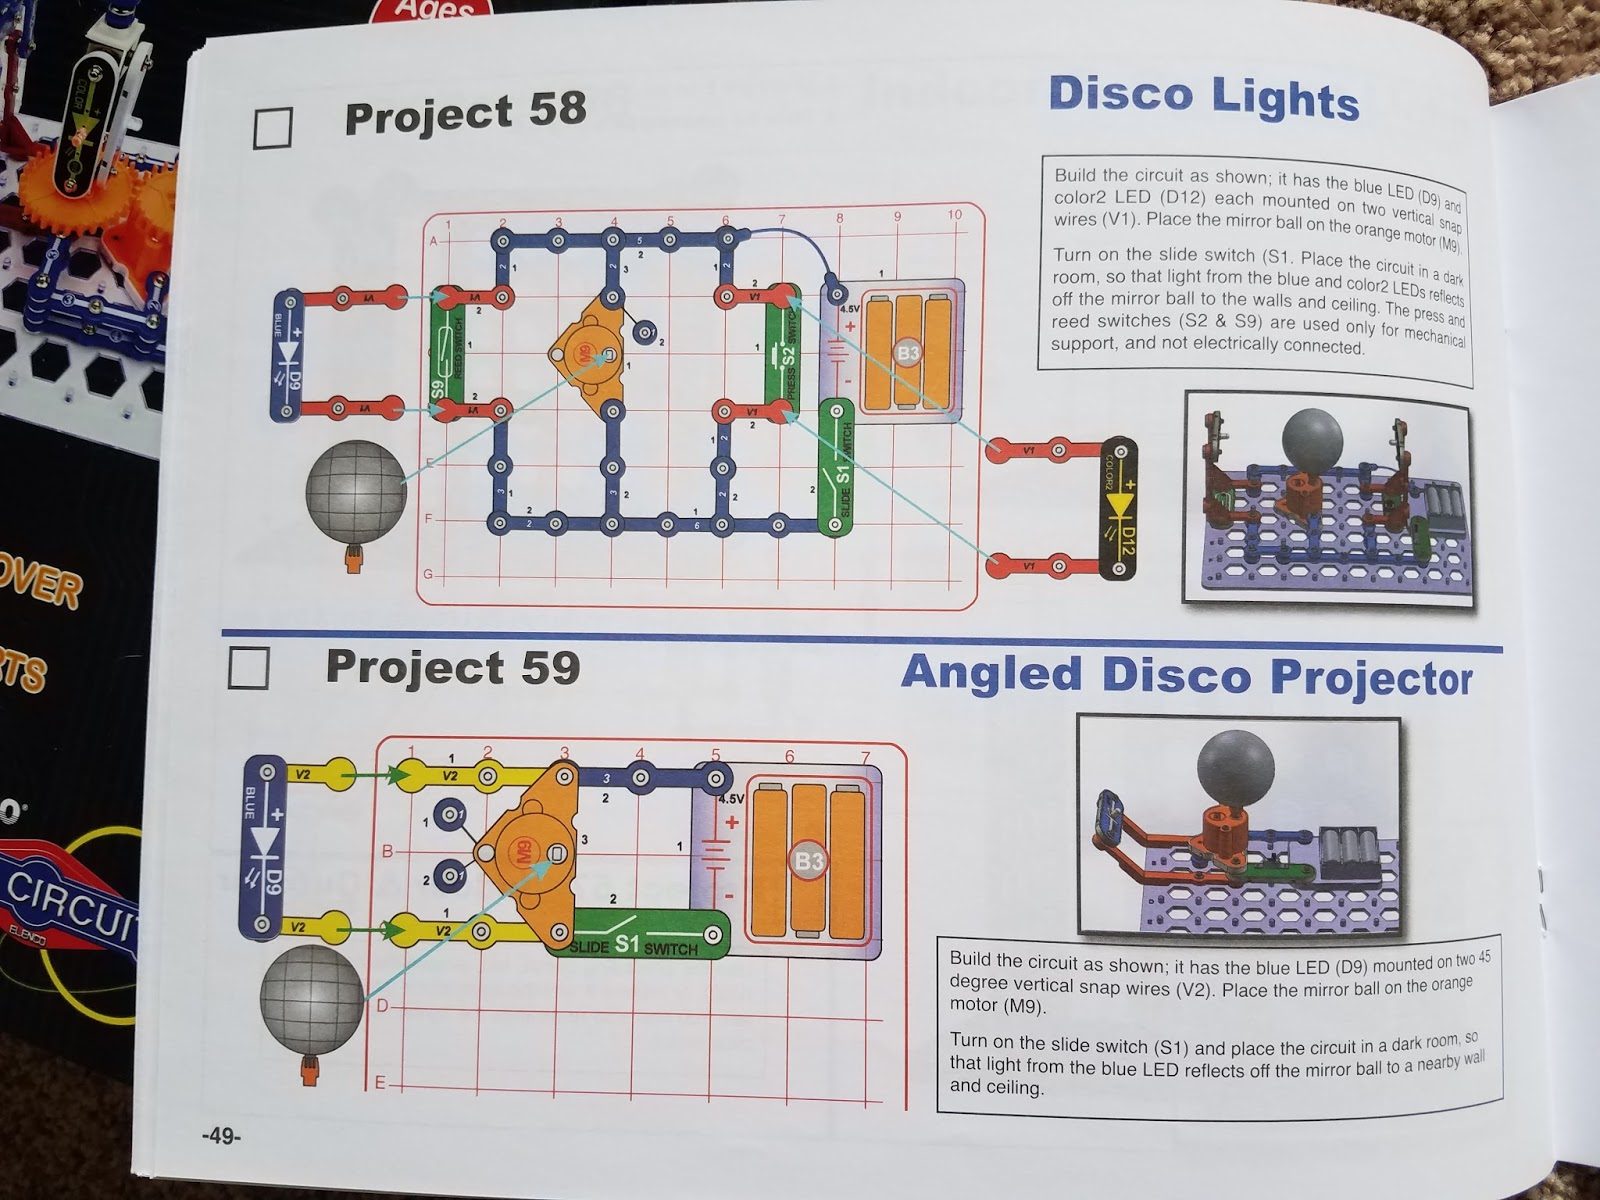 The Abcd Diaries Elenco Snap Circuits 3d Meg Kit Stem Learning Fun Circuit Parts This Has Several Of Same Base Pieces As Other Sets But Adds Tons New Component For Even More Awesome Experiments